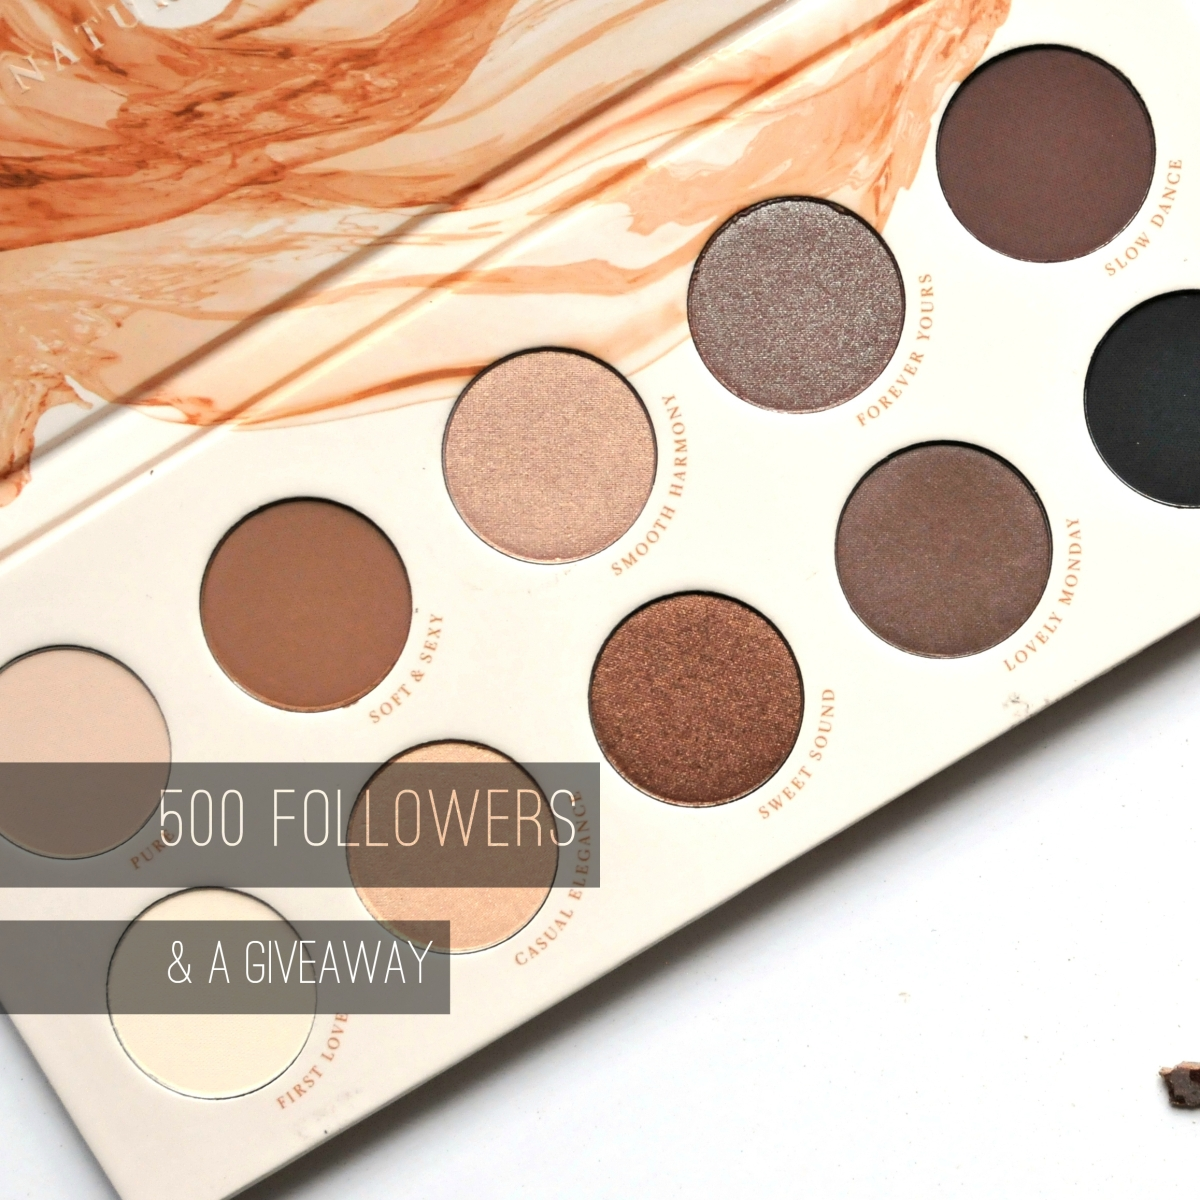 Billie Amber Saunders: 500 Followers & Giveaway!